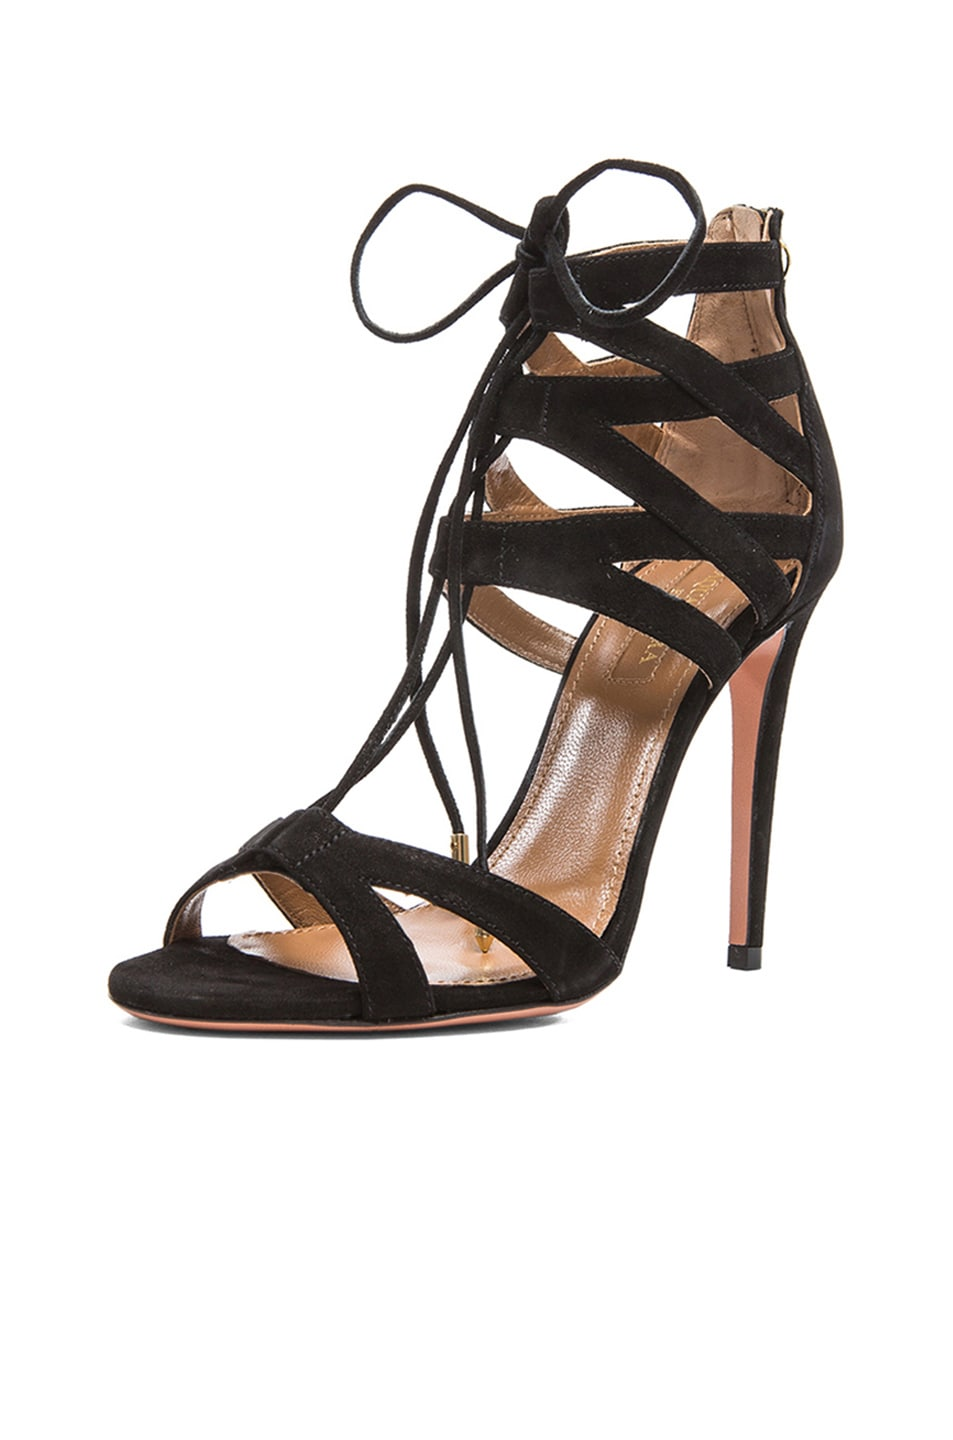 Image 2 of Aquazzura Beverly Hills Suede Sandals in Black